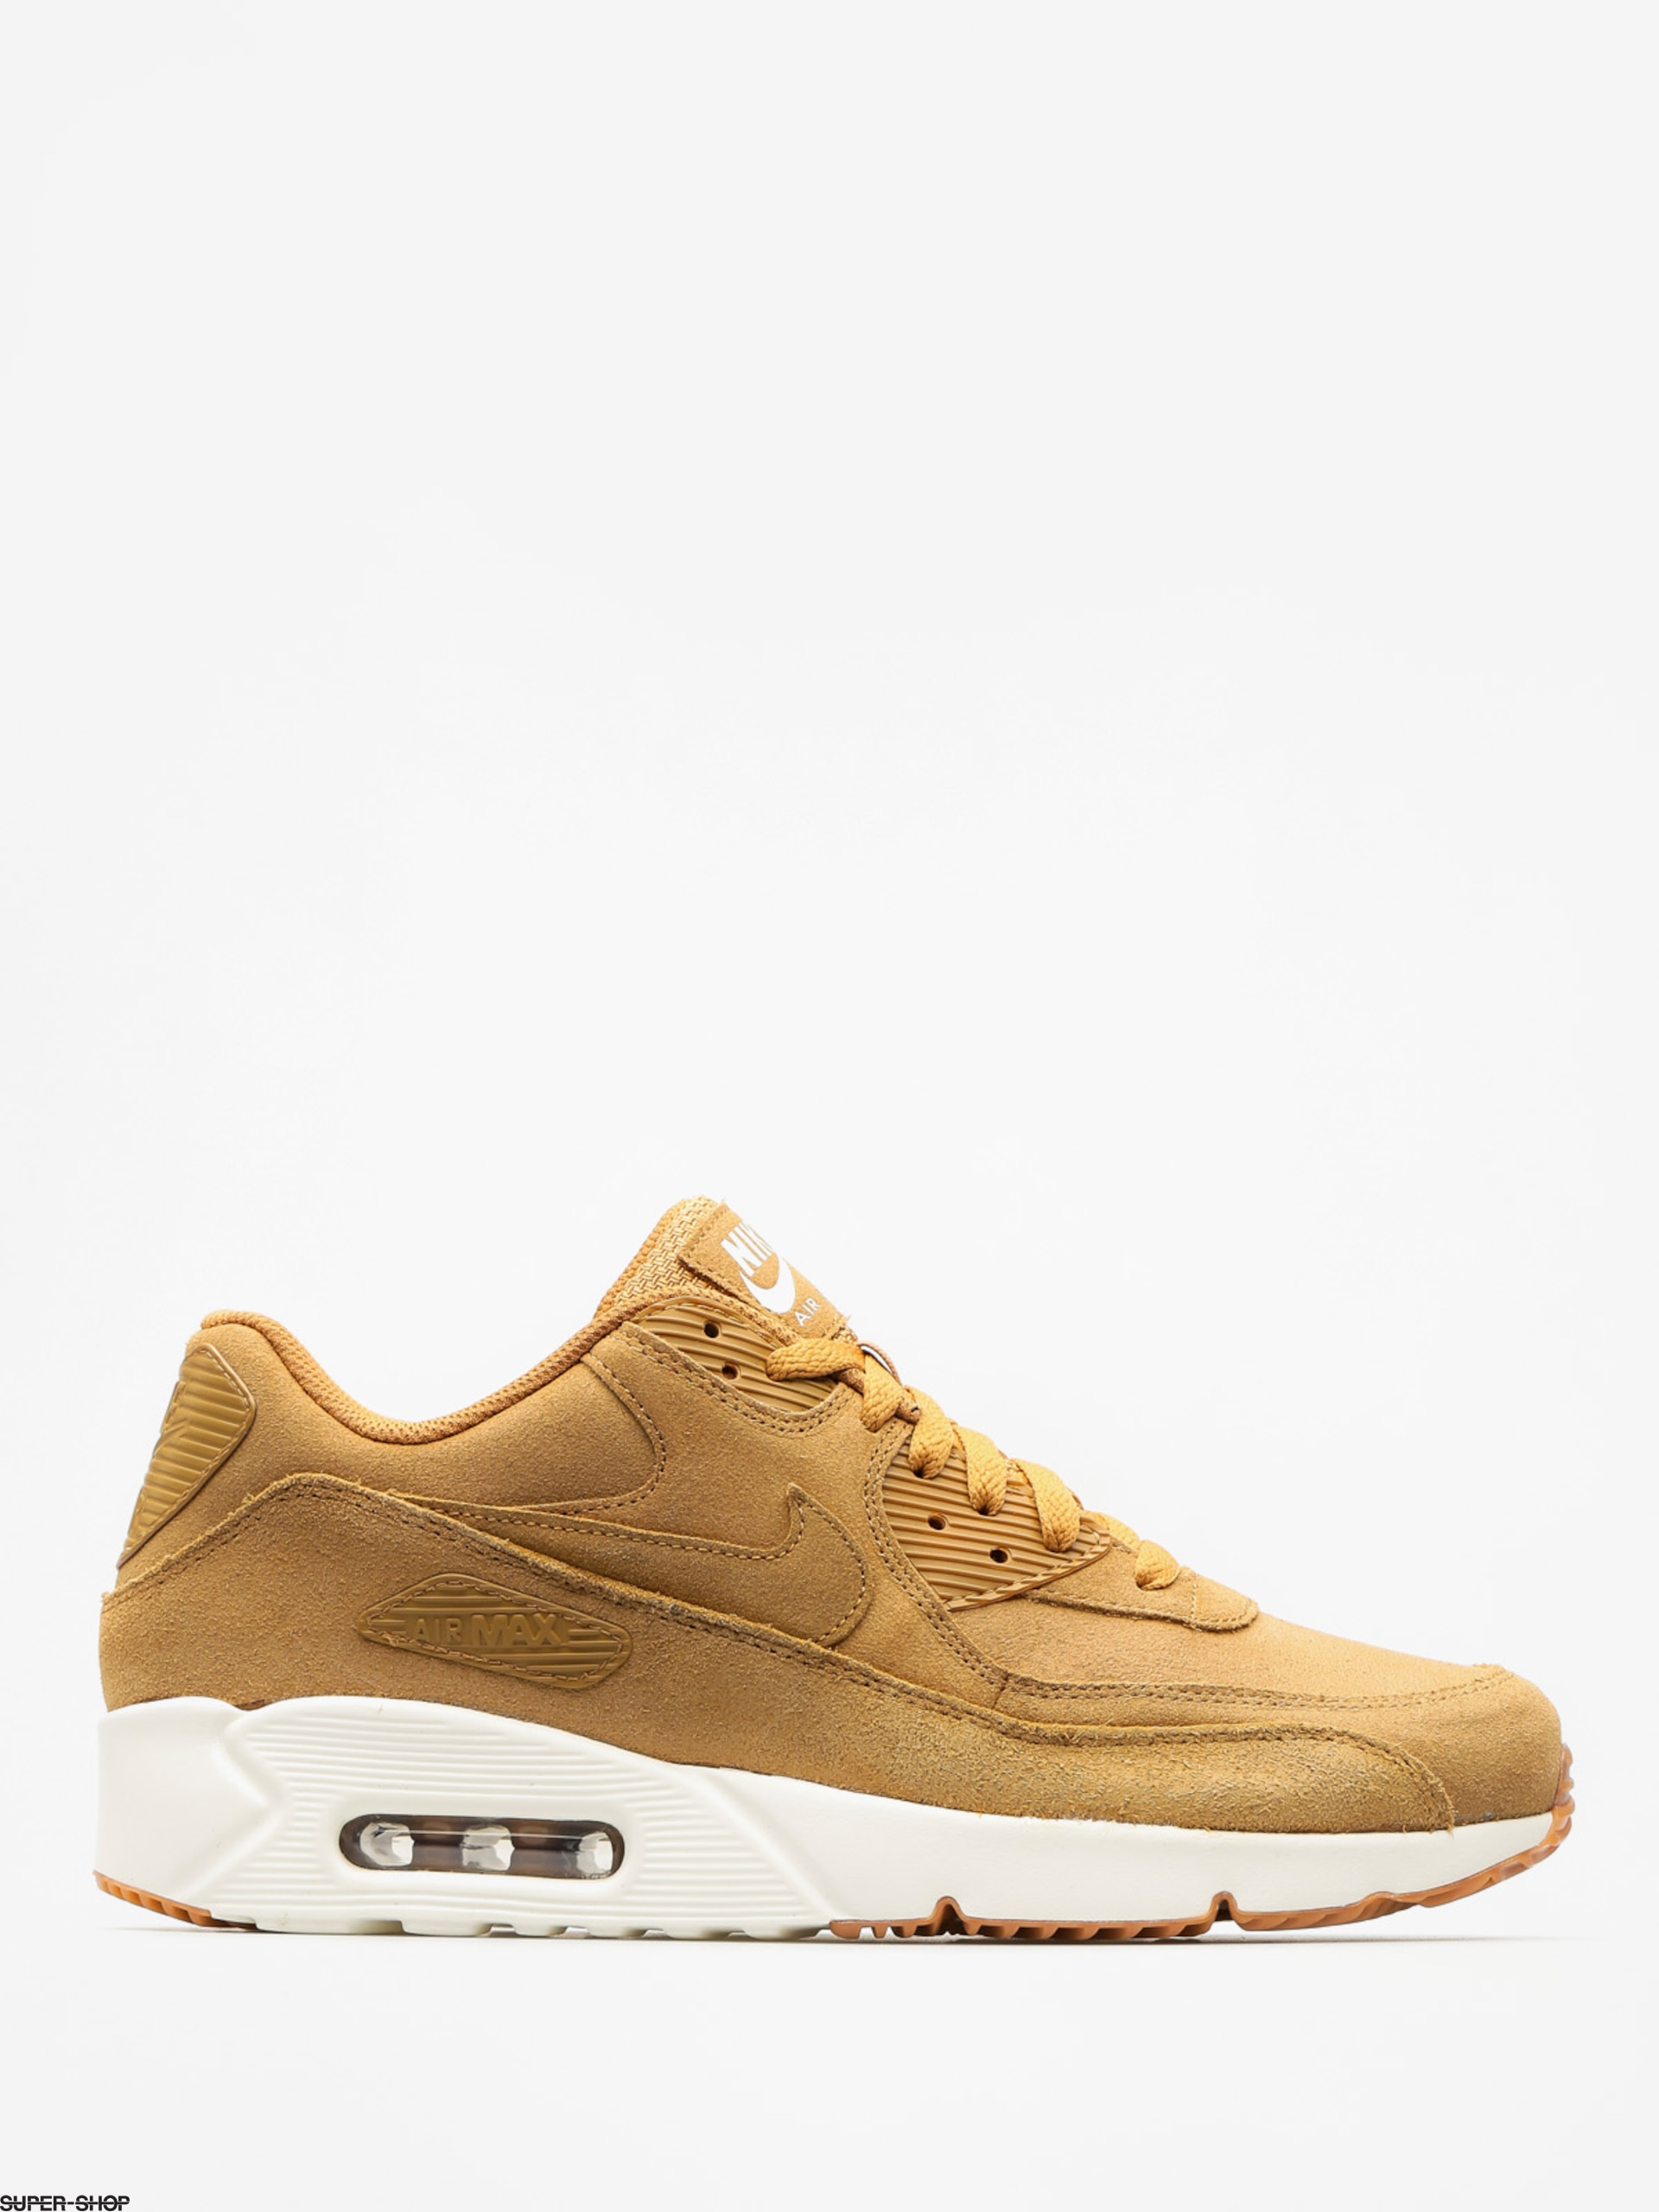 Nike Shoes Air Max 90 (Ultra 2.0 Ltr flax/flax sail gum med brown)